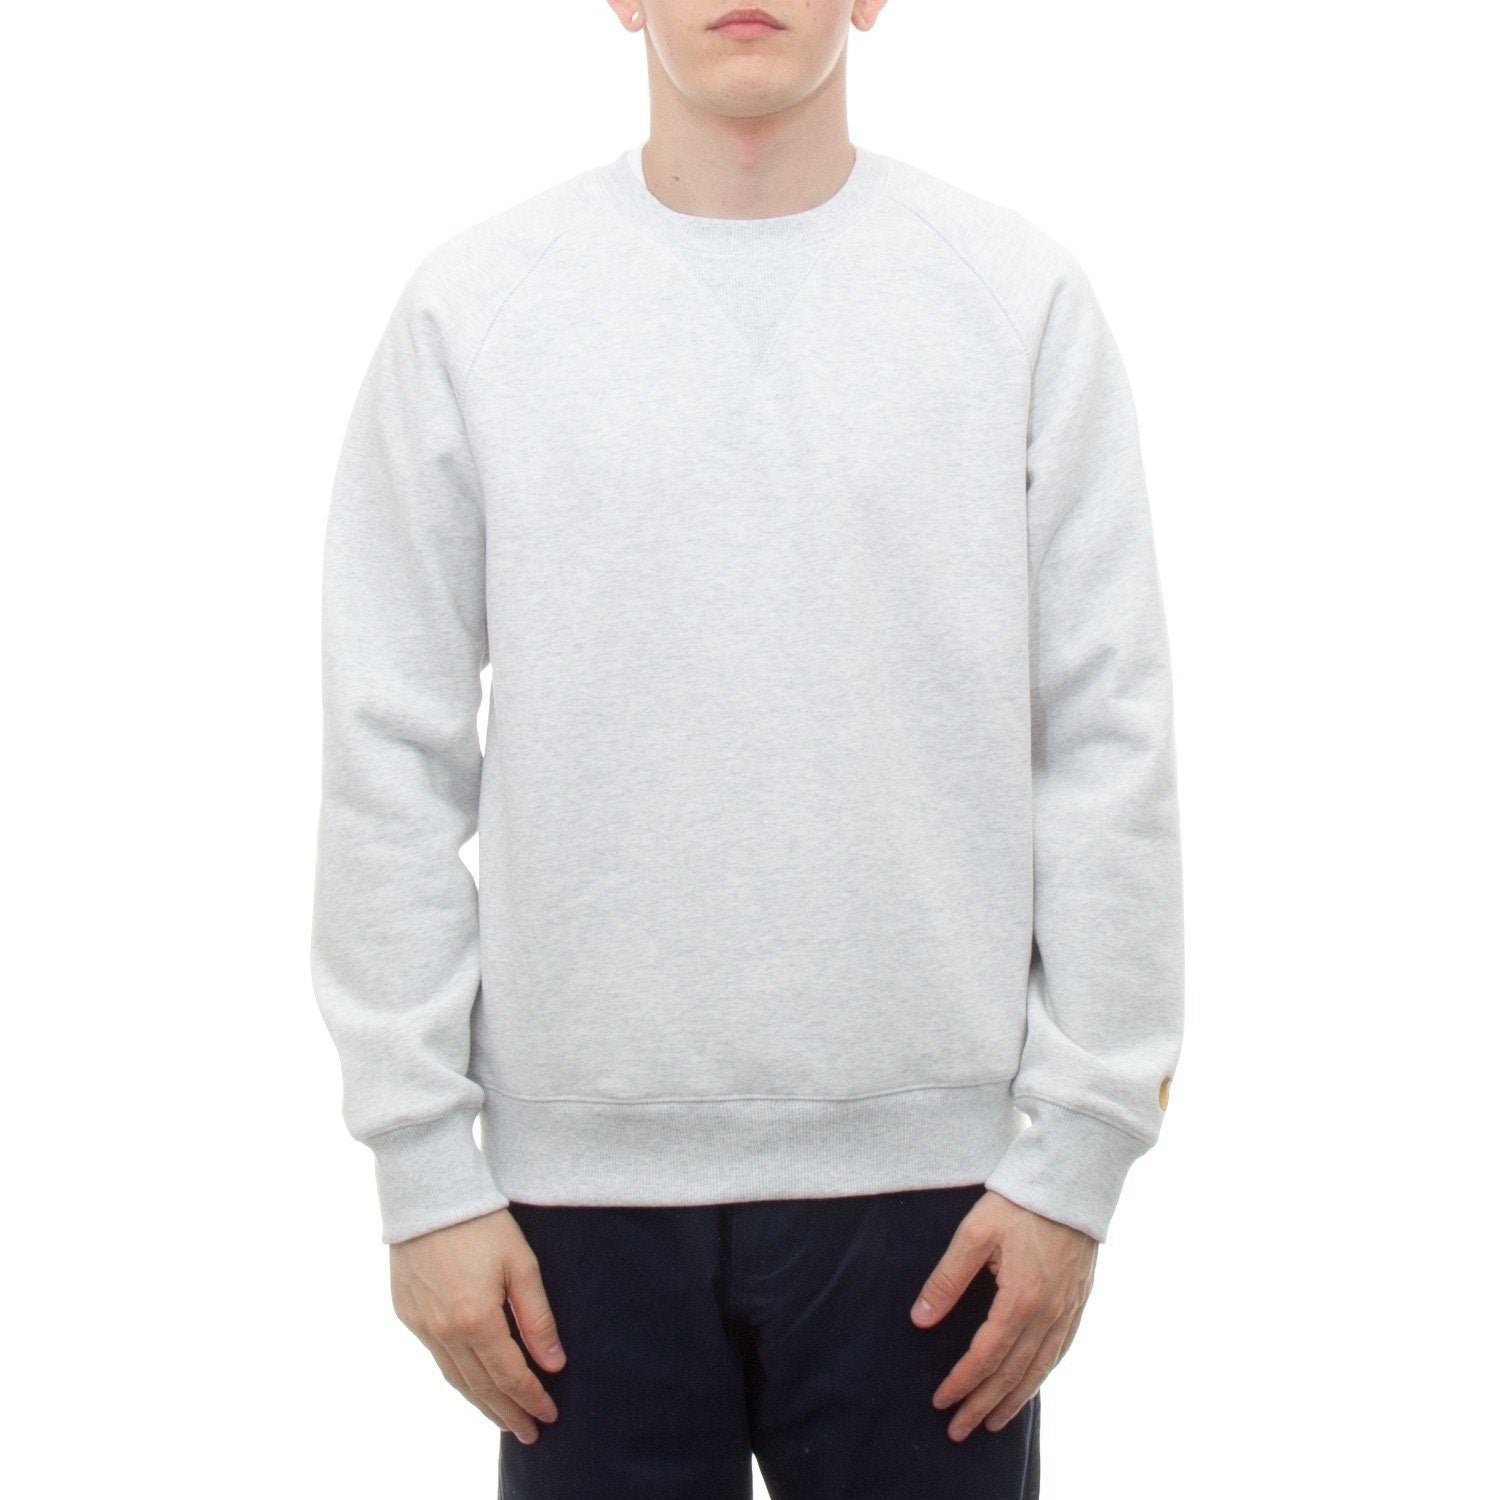 Carhartt Chase Sweatshirt (Ash Heather & Gold) - Number Six 1